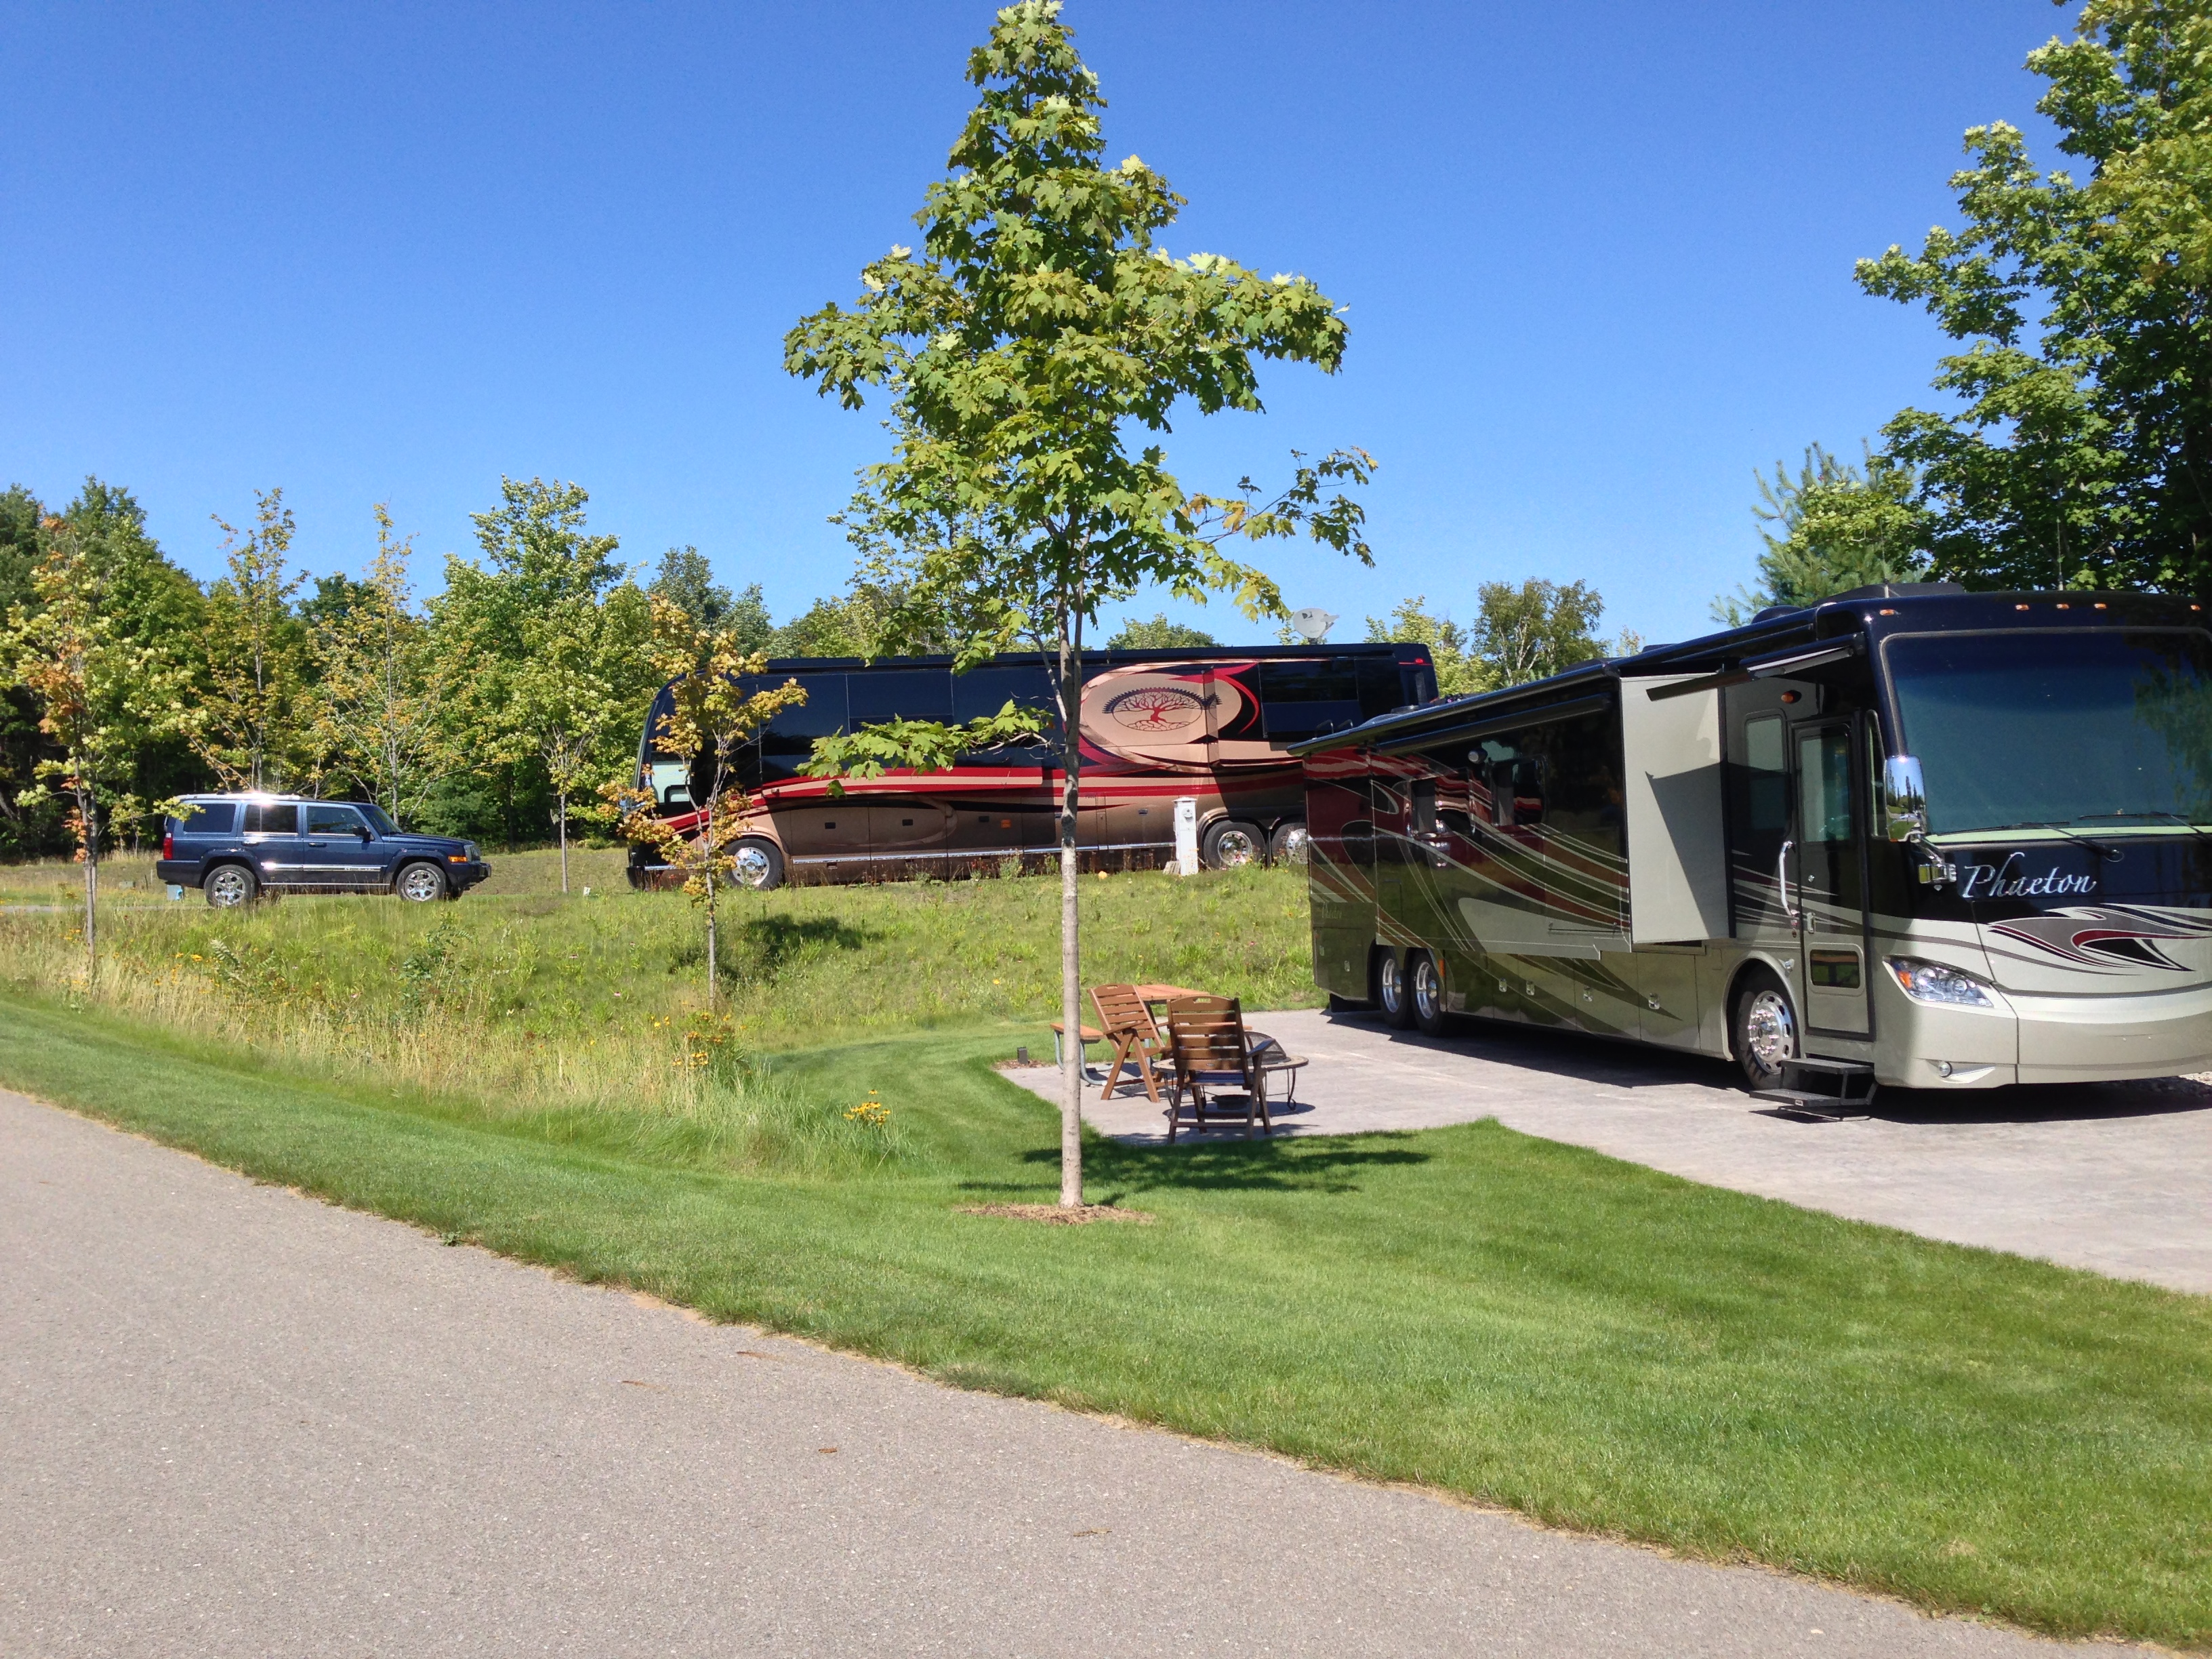 Showing off some of our unique RV Resort topography